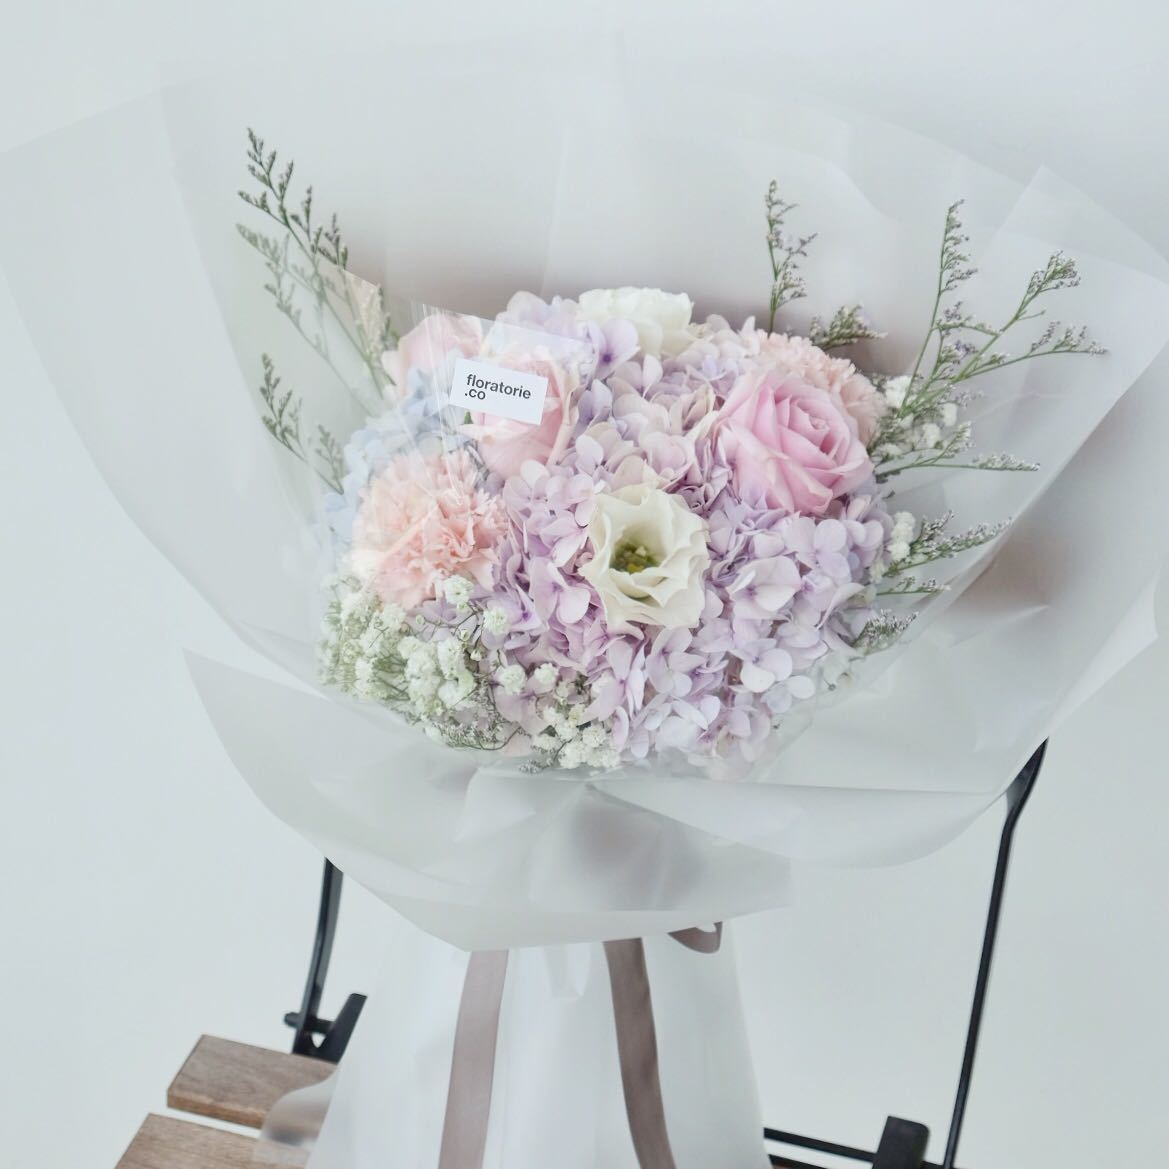 Floratorie - Singapore Online Florist | Flower Delivery | Flower Arrangment Workshop | Featured Collections - Dream